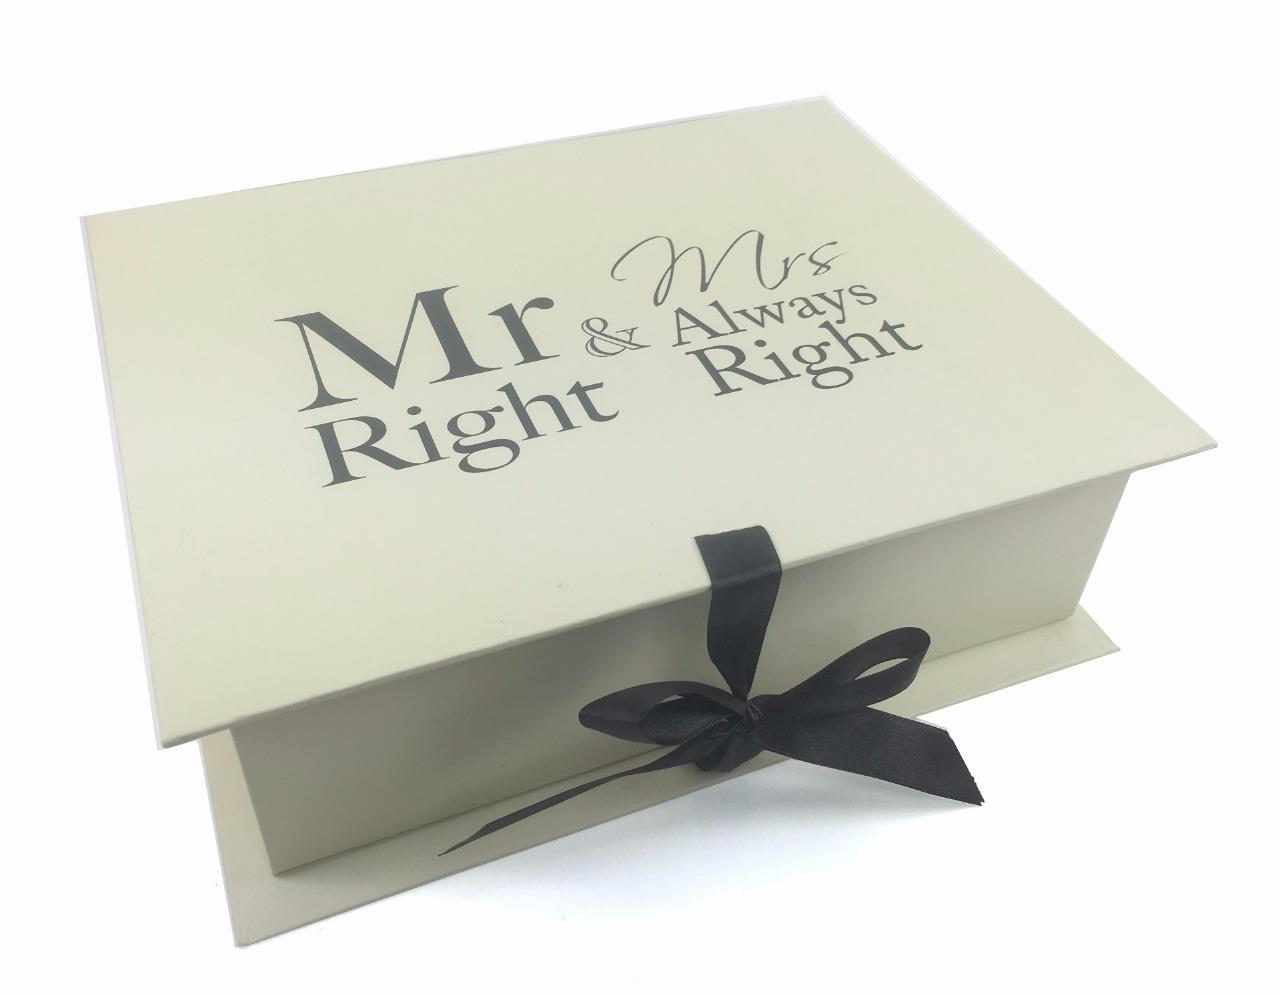 Wedding Gift Keepsakes : Details about Wedding Gift Keepsake Box With Mr and Mrs Right LP71483